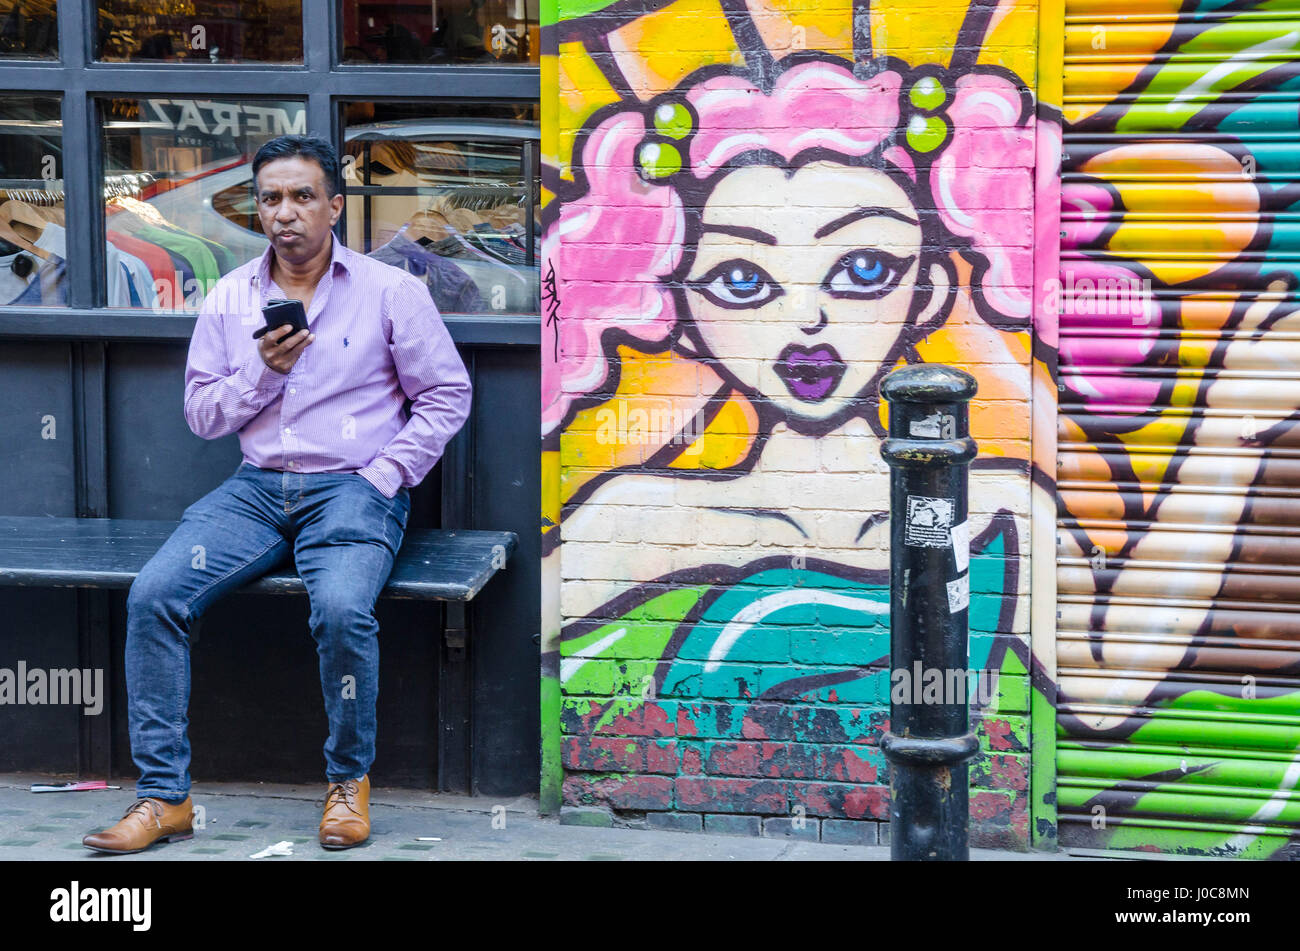 a-man-sits-on-a-bench-next-to-a-shop-on-hanbury-street-in-east-london-J0C8MN.jpg